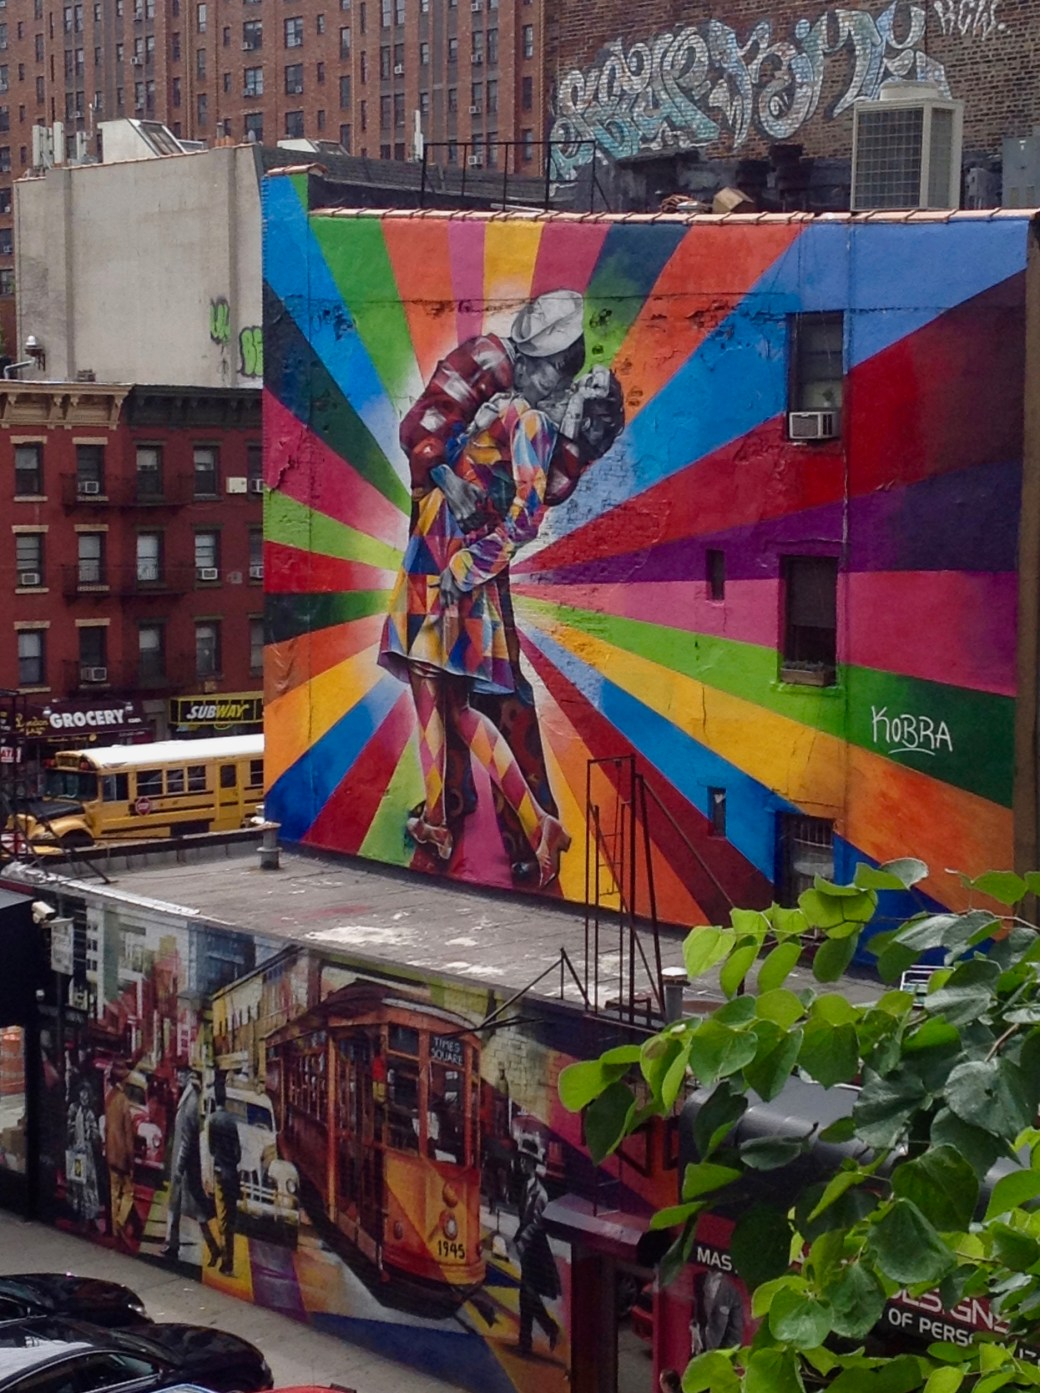 The Kiss - Oeuvre Street Art par Eduardo Kobra - Fresque Murale iconique New York - Copyright : @Altinnov